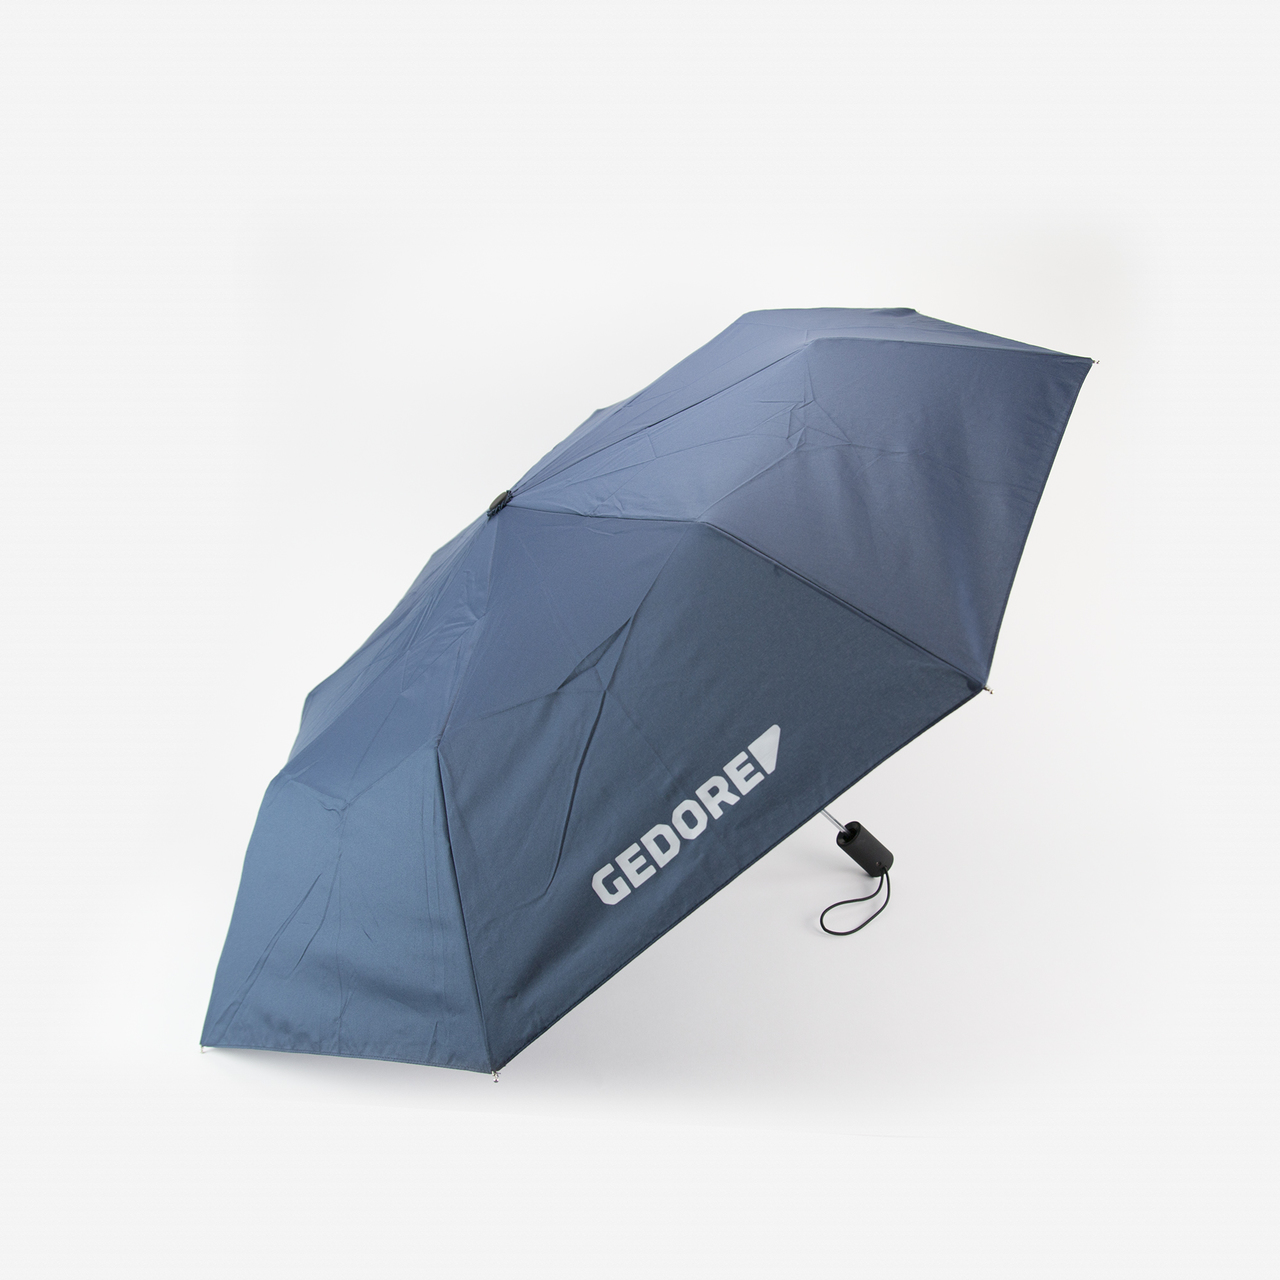 Gedore Umbrella - KC Tool